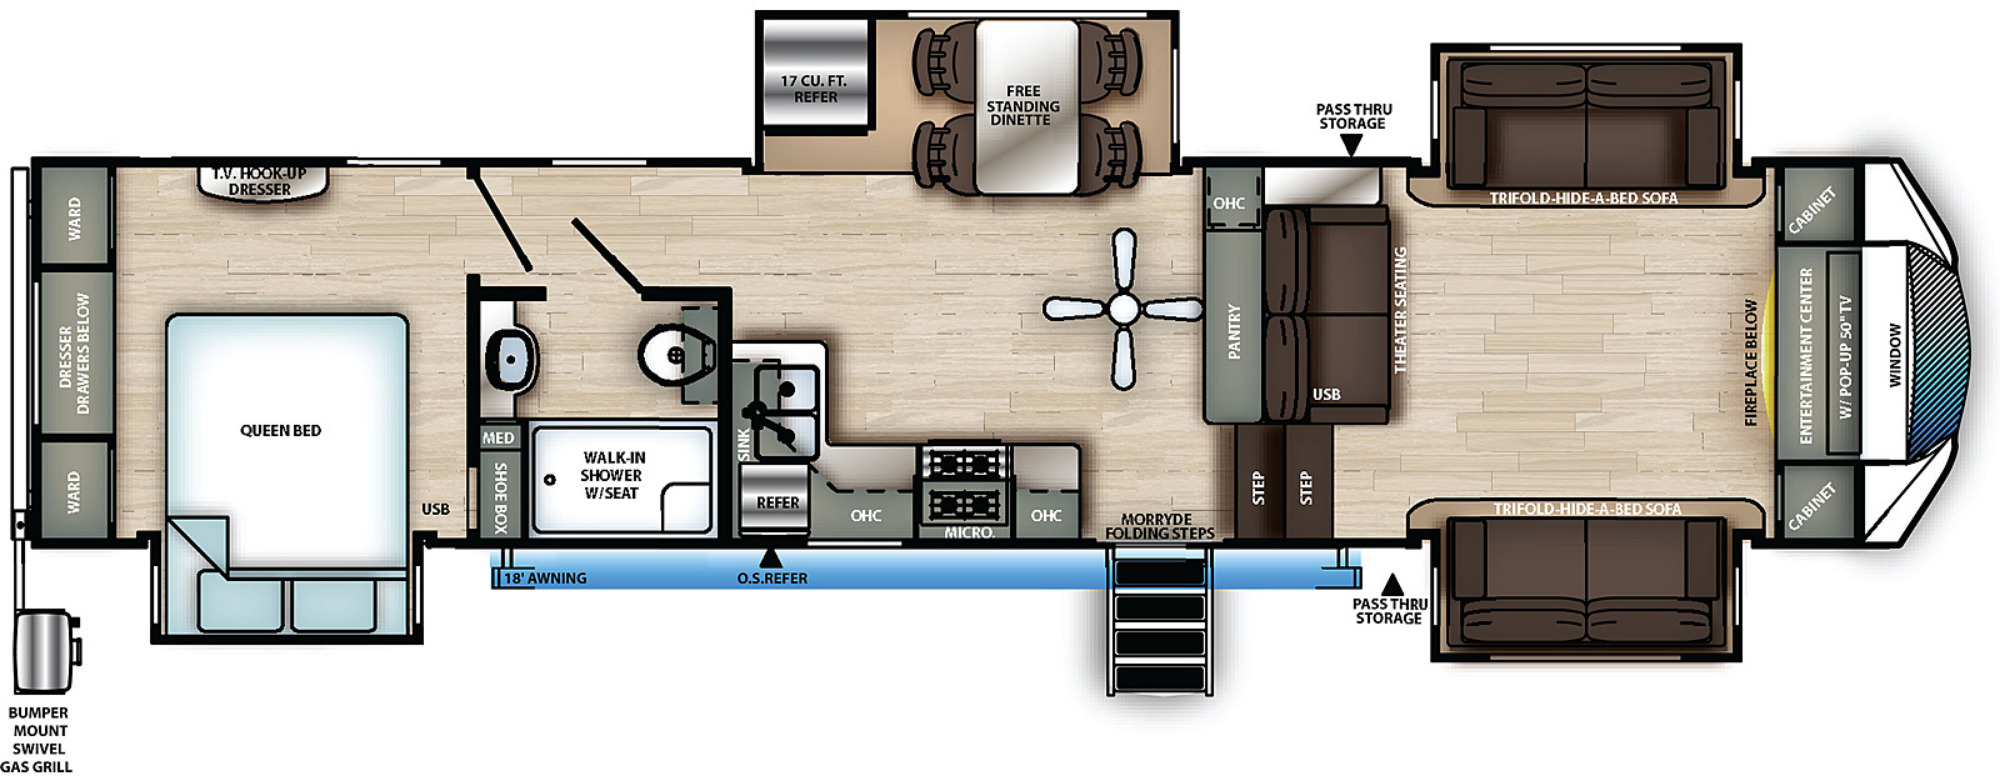 View Floor Plan for 2021 FOREST RIVER SANDPIPER C-CLASS 3770FL